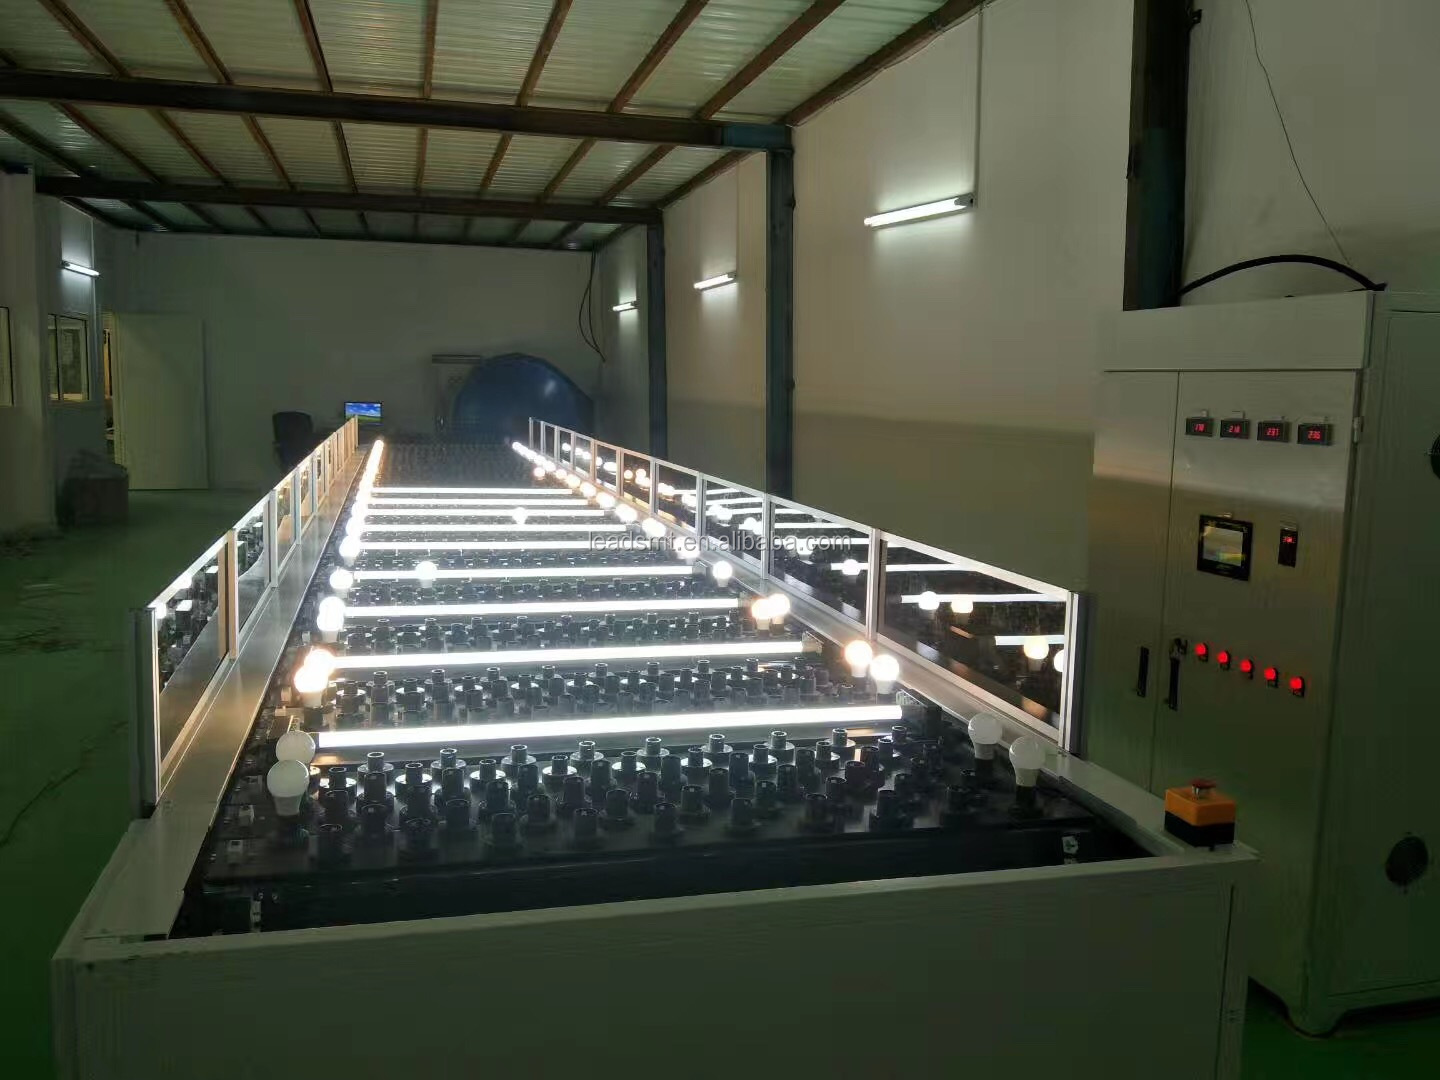 Nieuwe LED fabriek set up LED lamp/strip/buis lampen montage making machine lijn